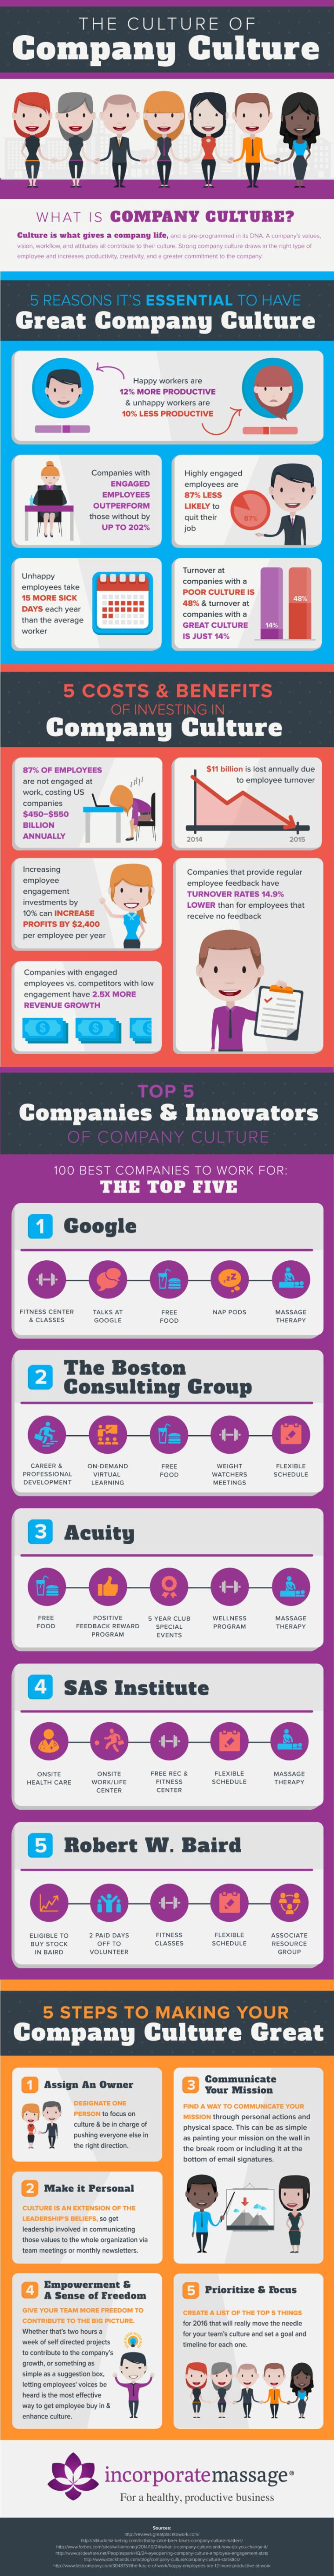 The Culture of Company Culture - infographic by Corporate Massage